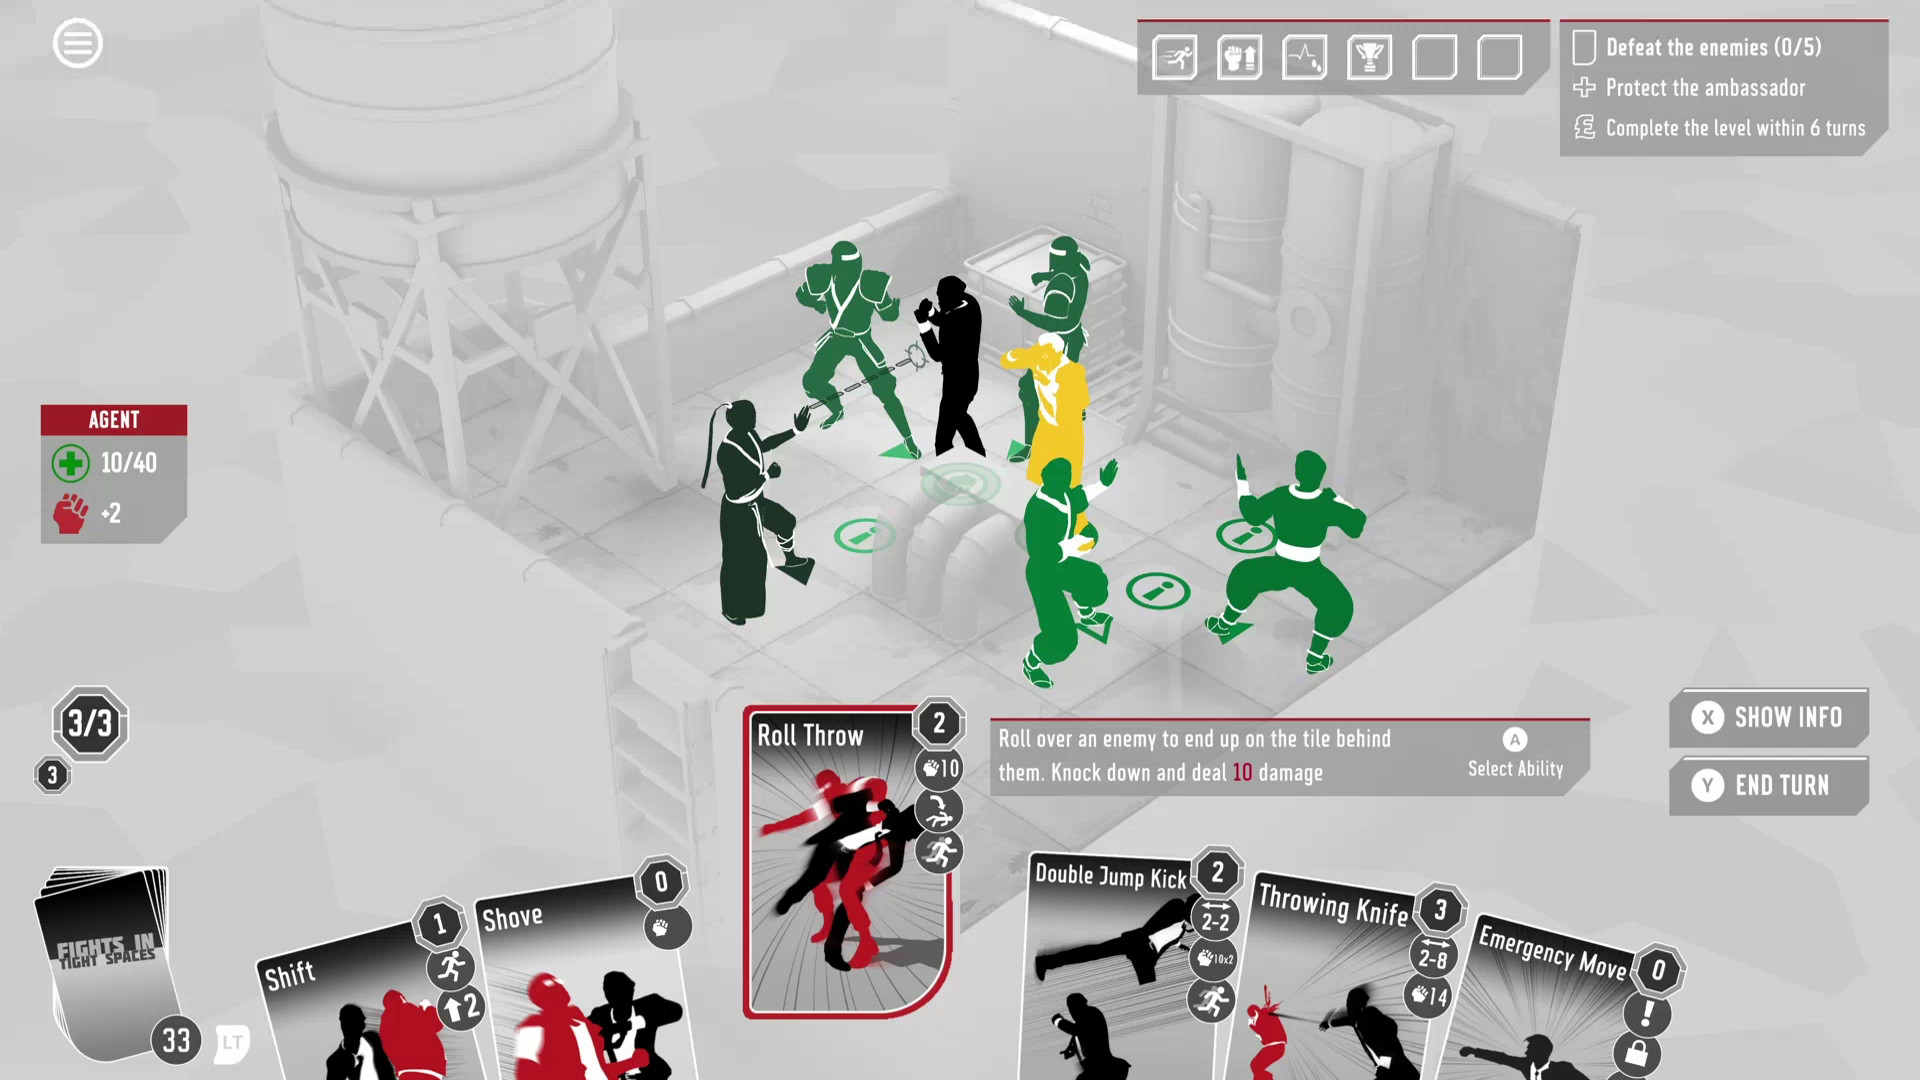 Fights in Tight Spaces Free Download